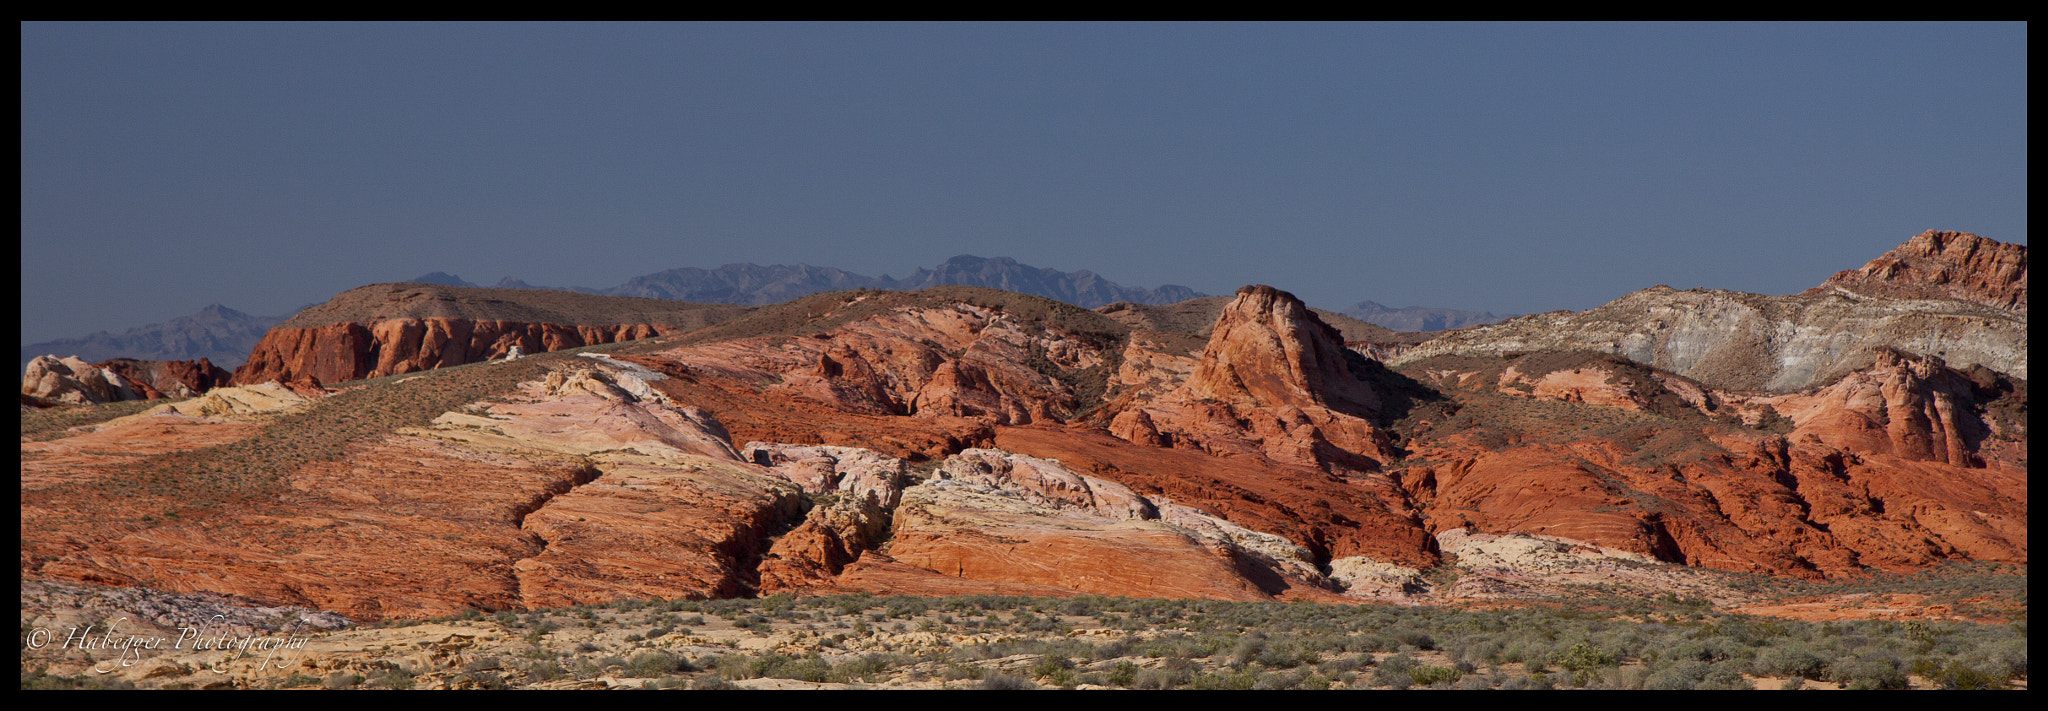 Photograph Valley of Fire by Chris Habegger on 500px